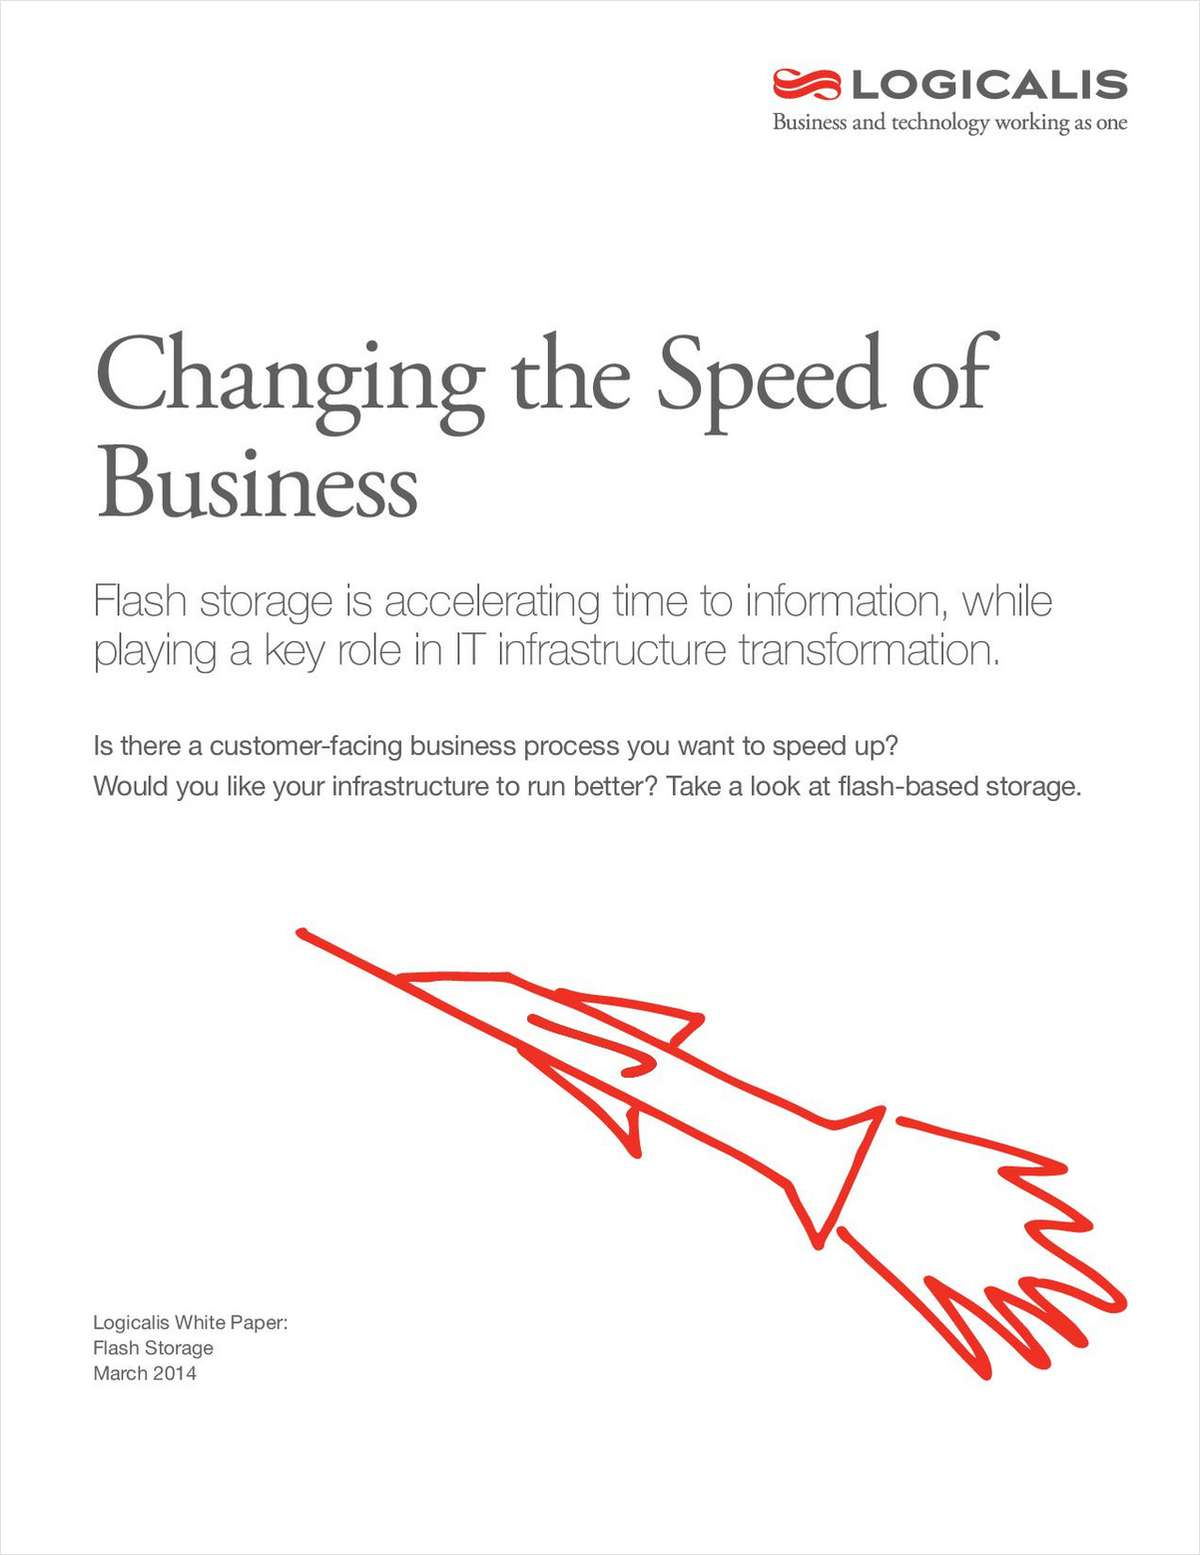 Changing the Speed of Business